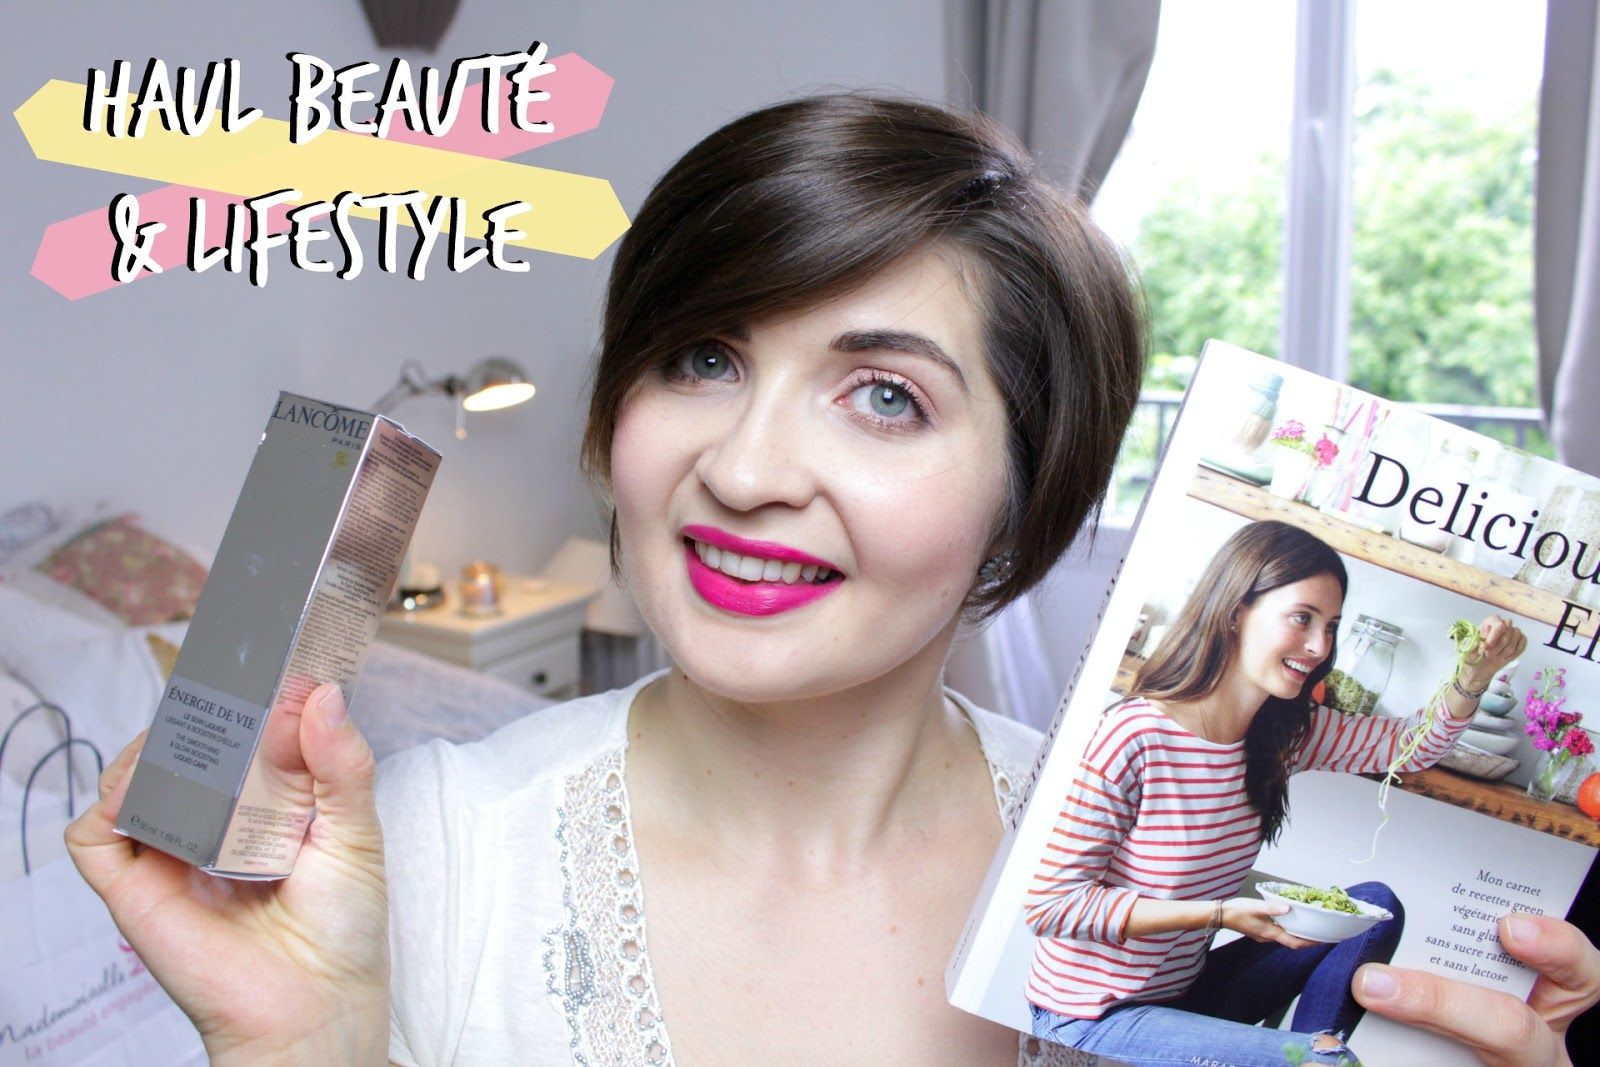 Haul Beauté & Lifestyle